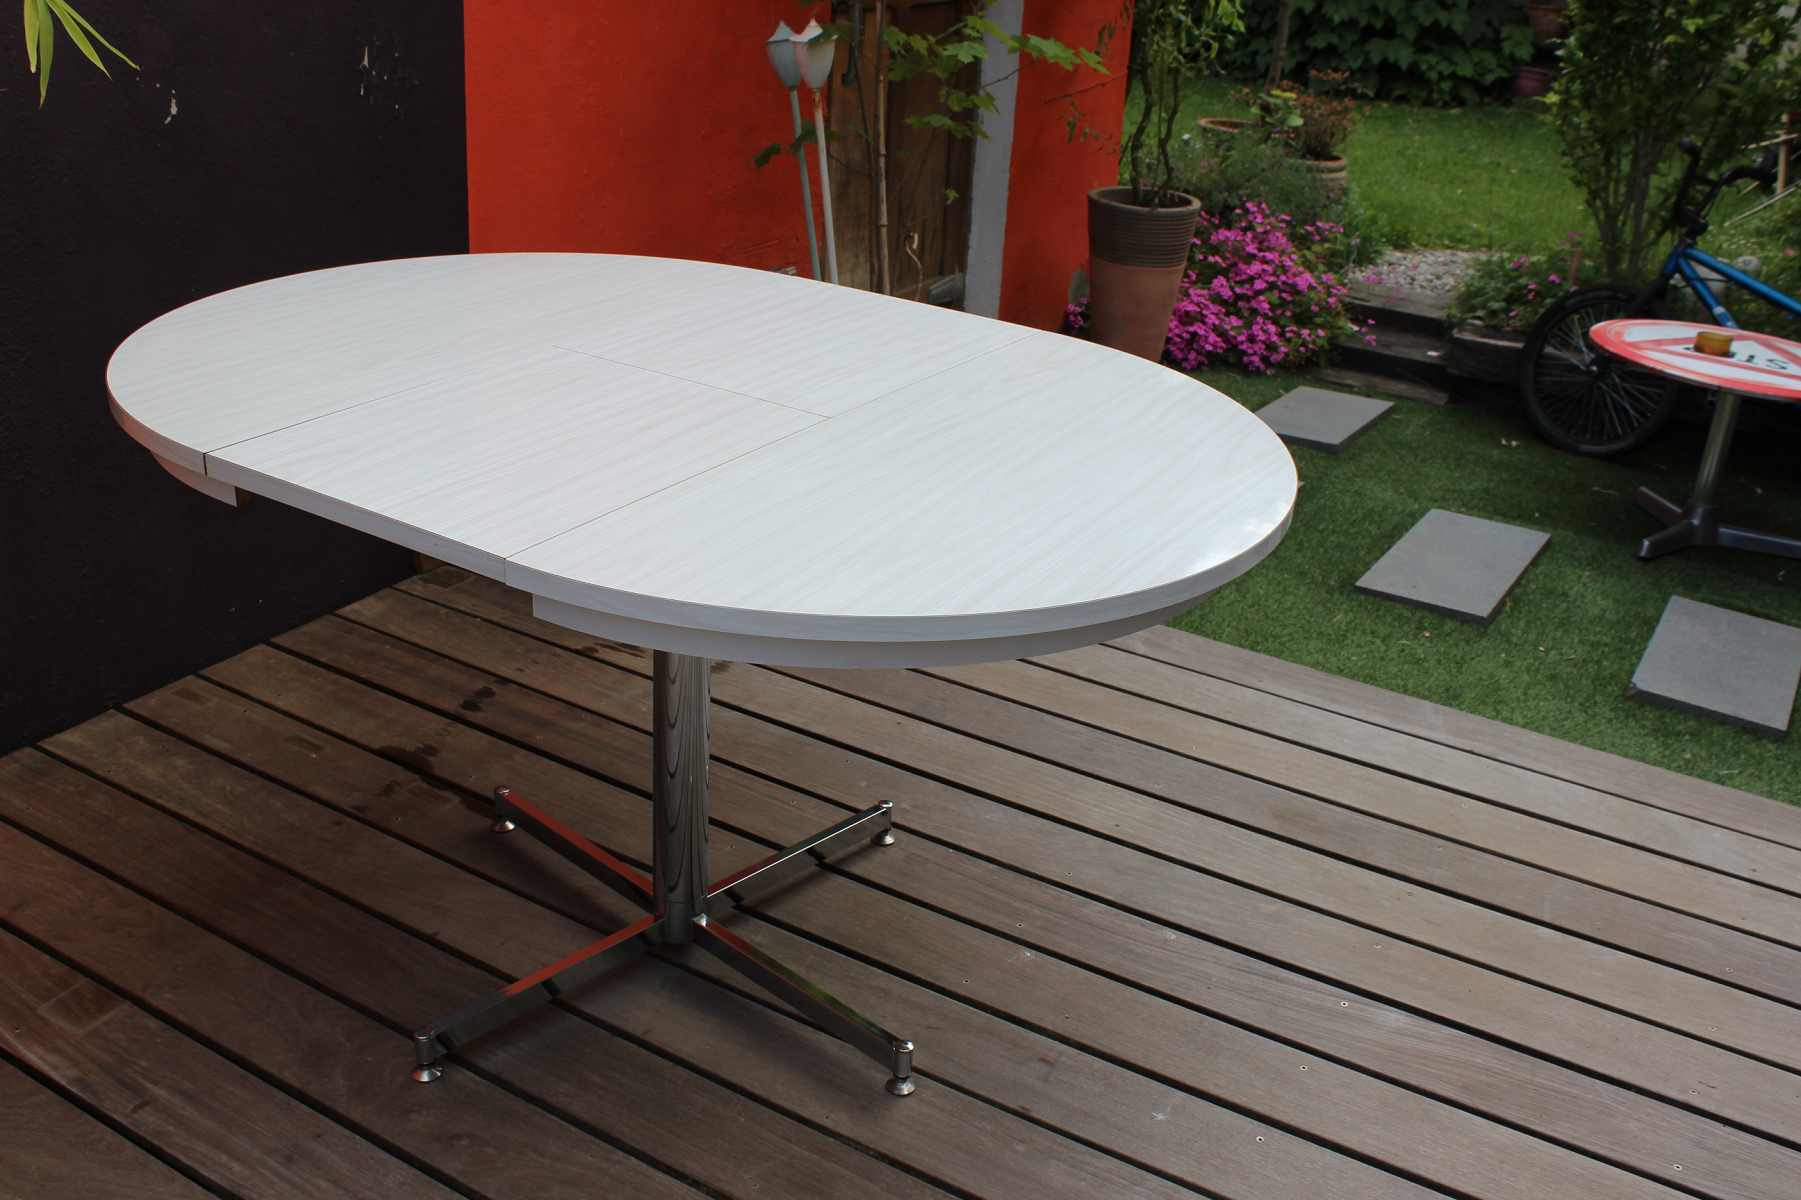 Table formica en version ronde ou ovale vintage by fabichka for Table ronde 100 cm avec rallonge